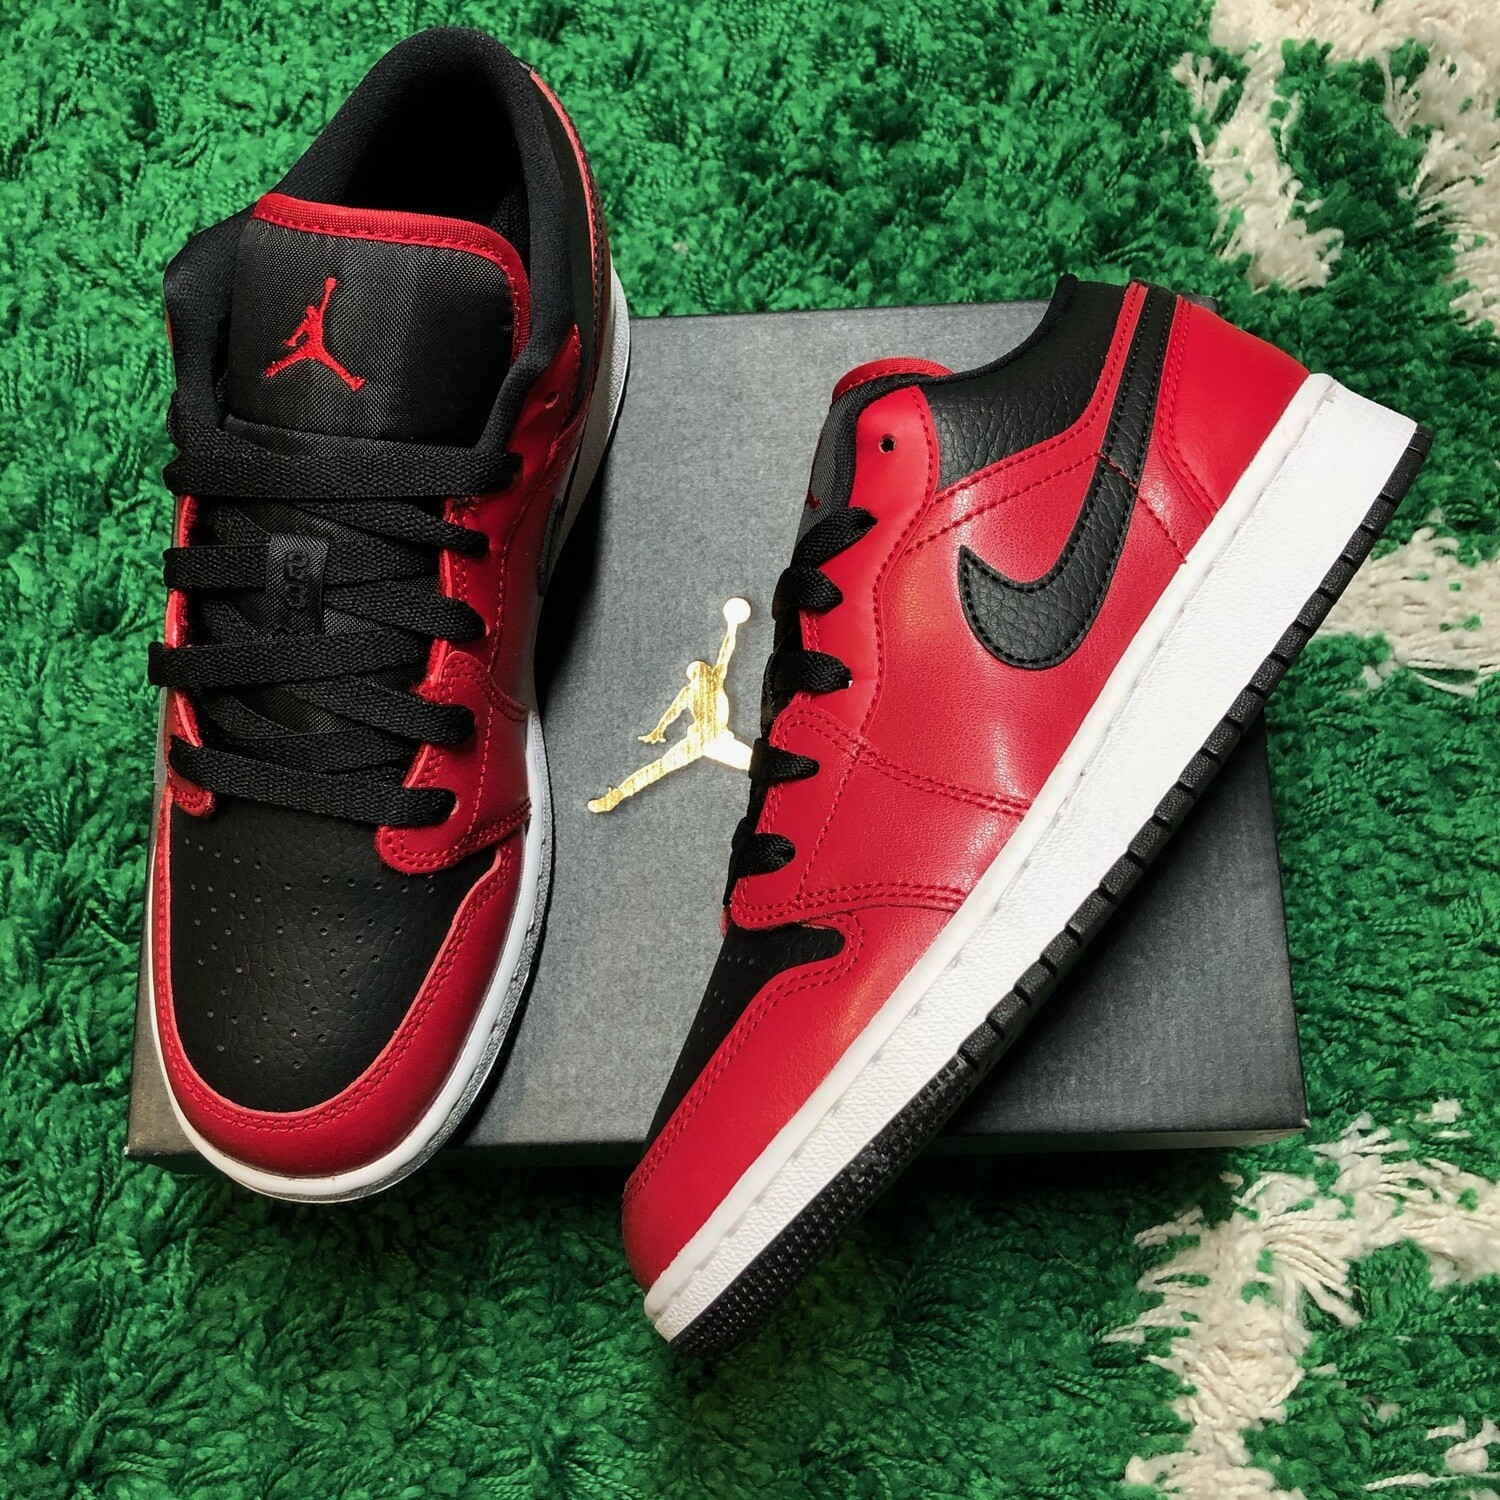 Jordan 1 Low Gym Red Black Pebbled Size 5.5Y